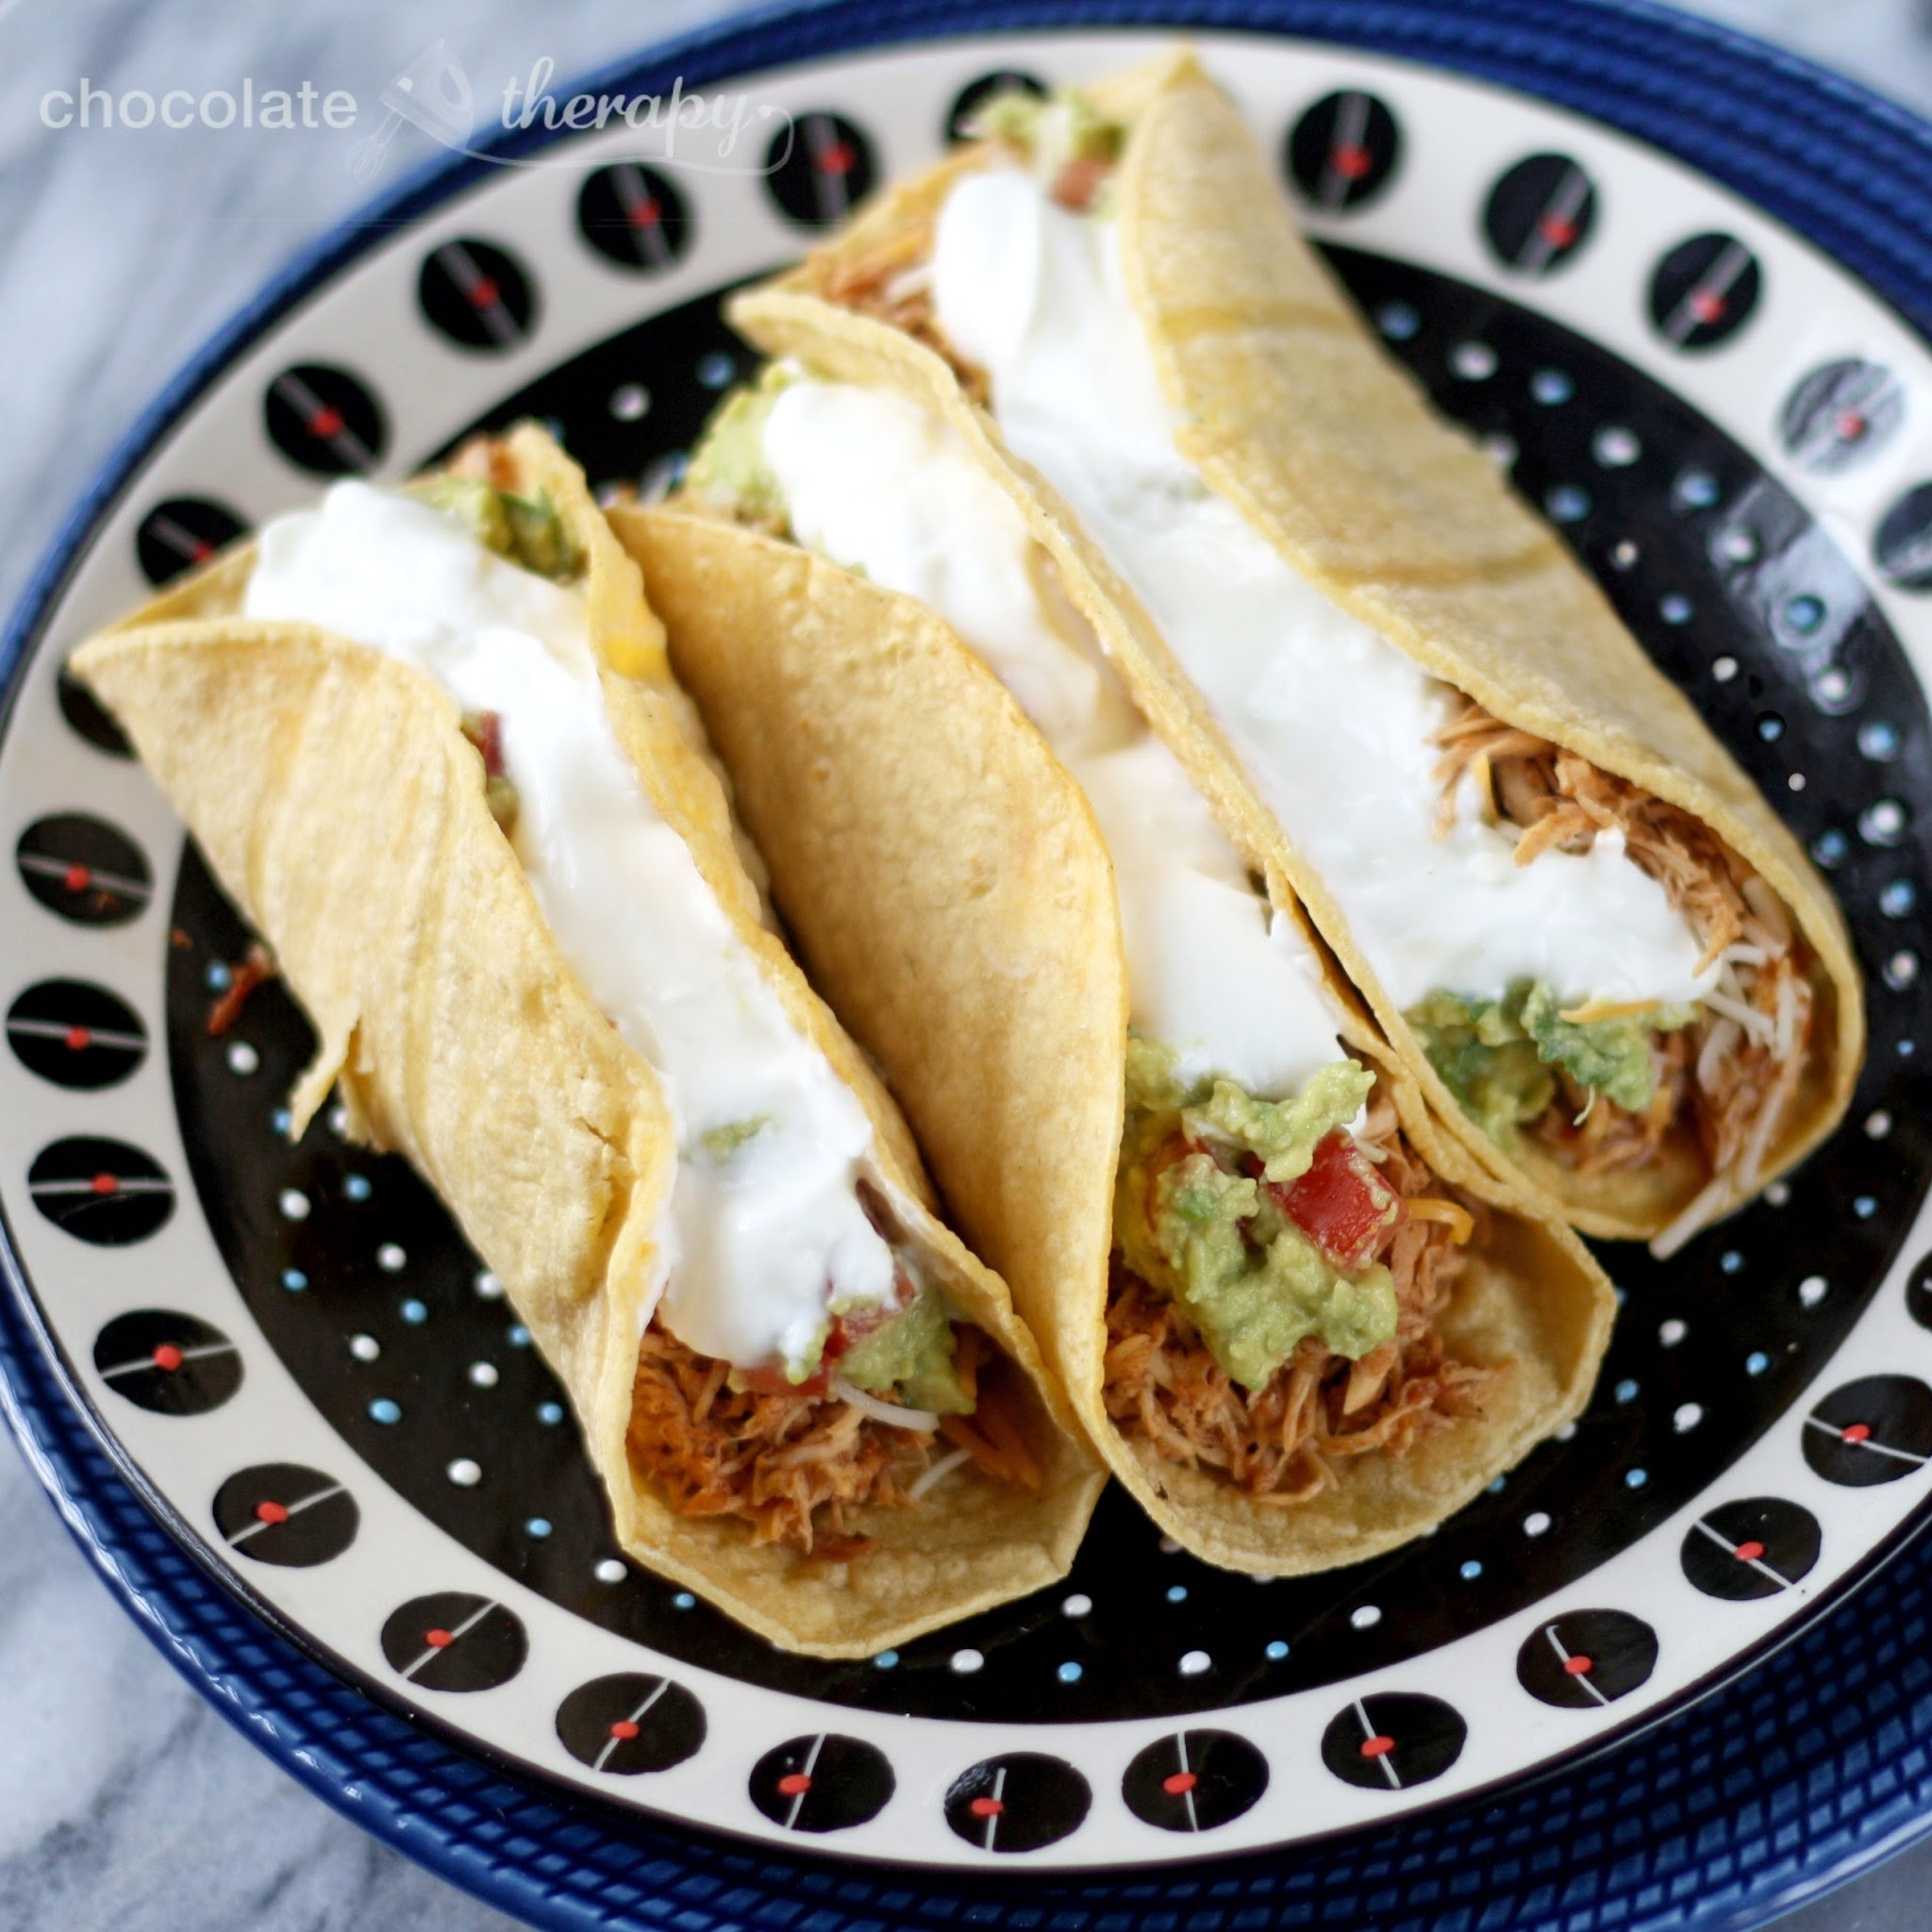 Crockpot Chicken Tacos with Homemade Salsa and Seasoning